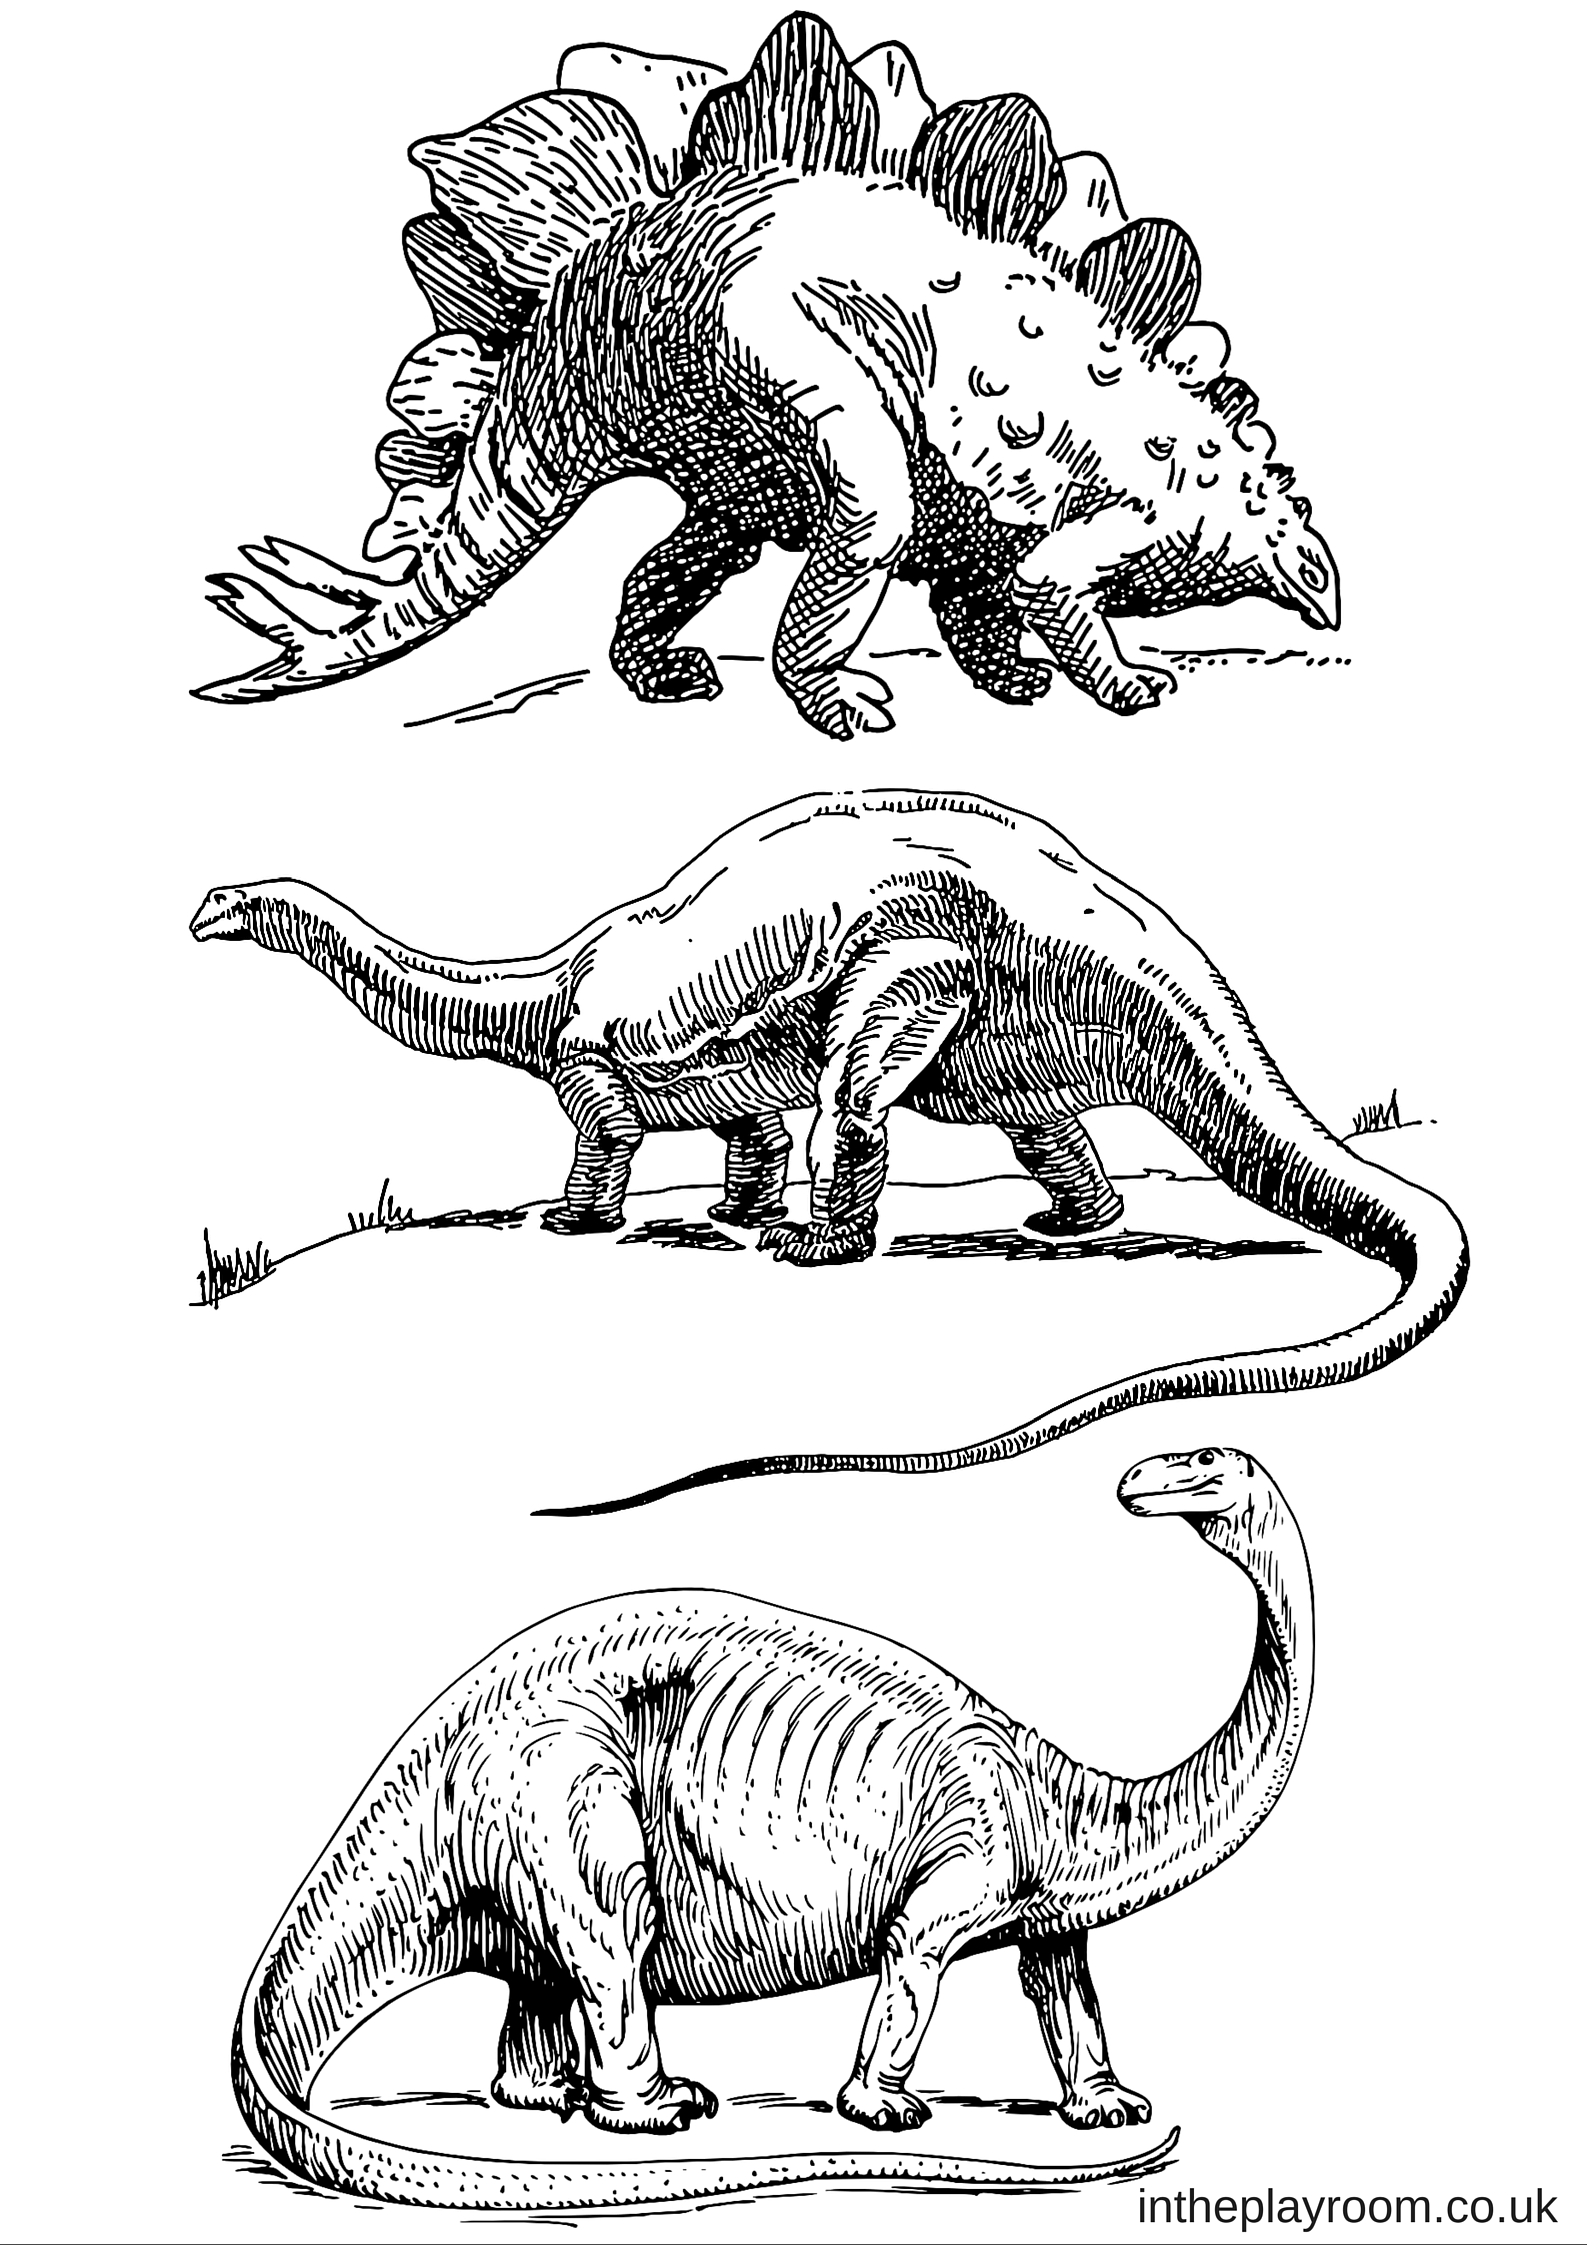 Set of 5 dinosaur colouring pages to print for kids